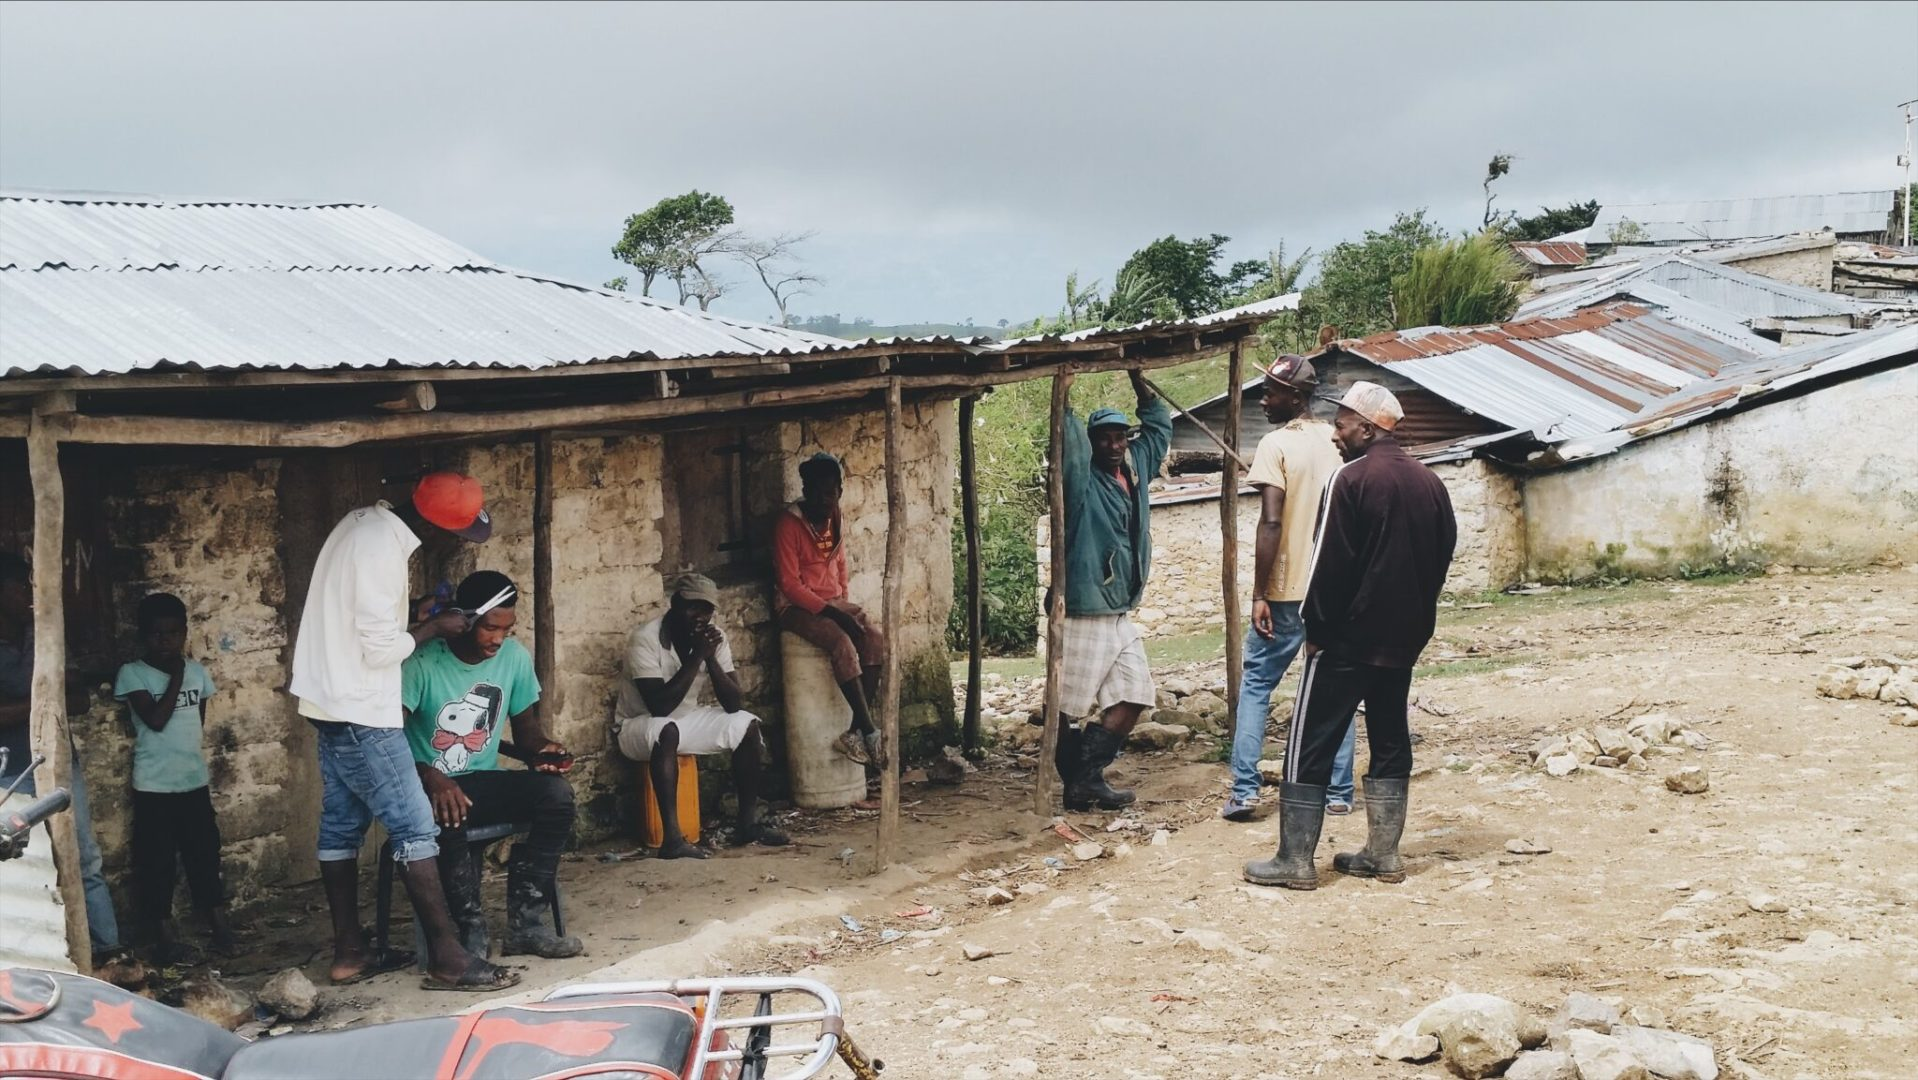 Plant With Purpose's MPI is valuable at allowing us to monitor the progress made in places like Cornillon, Haiti